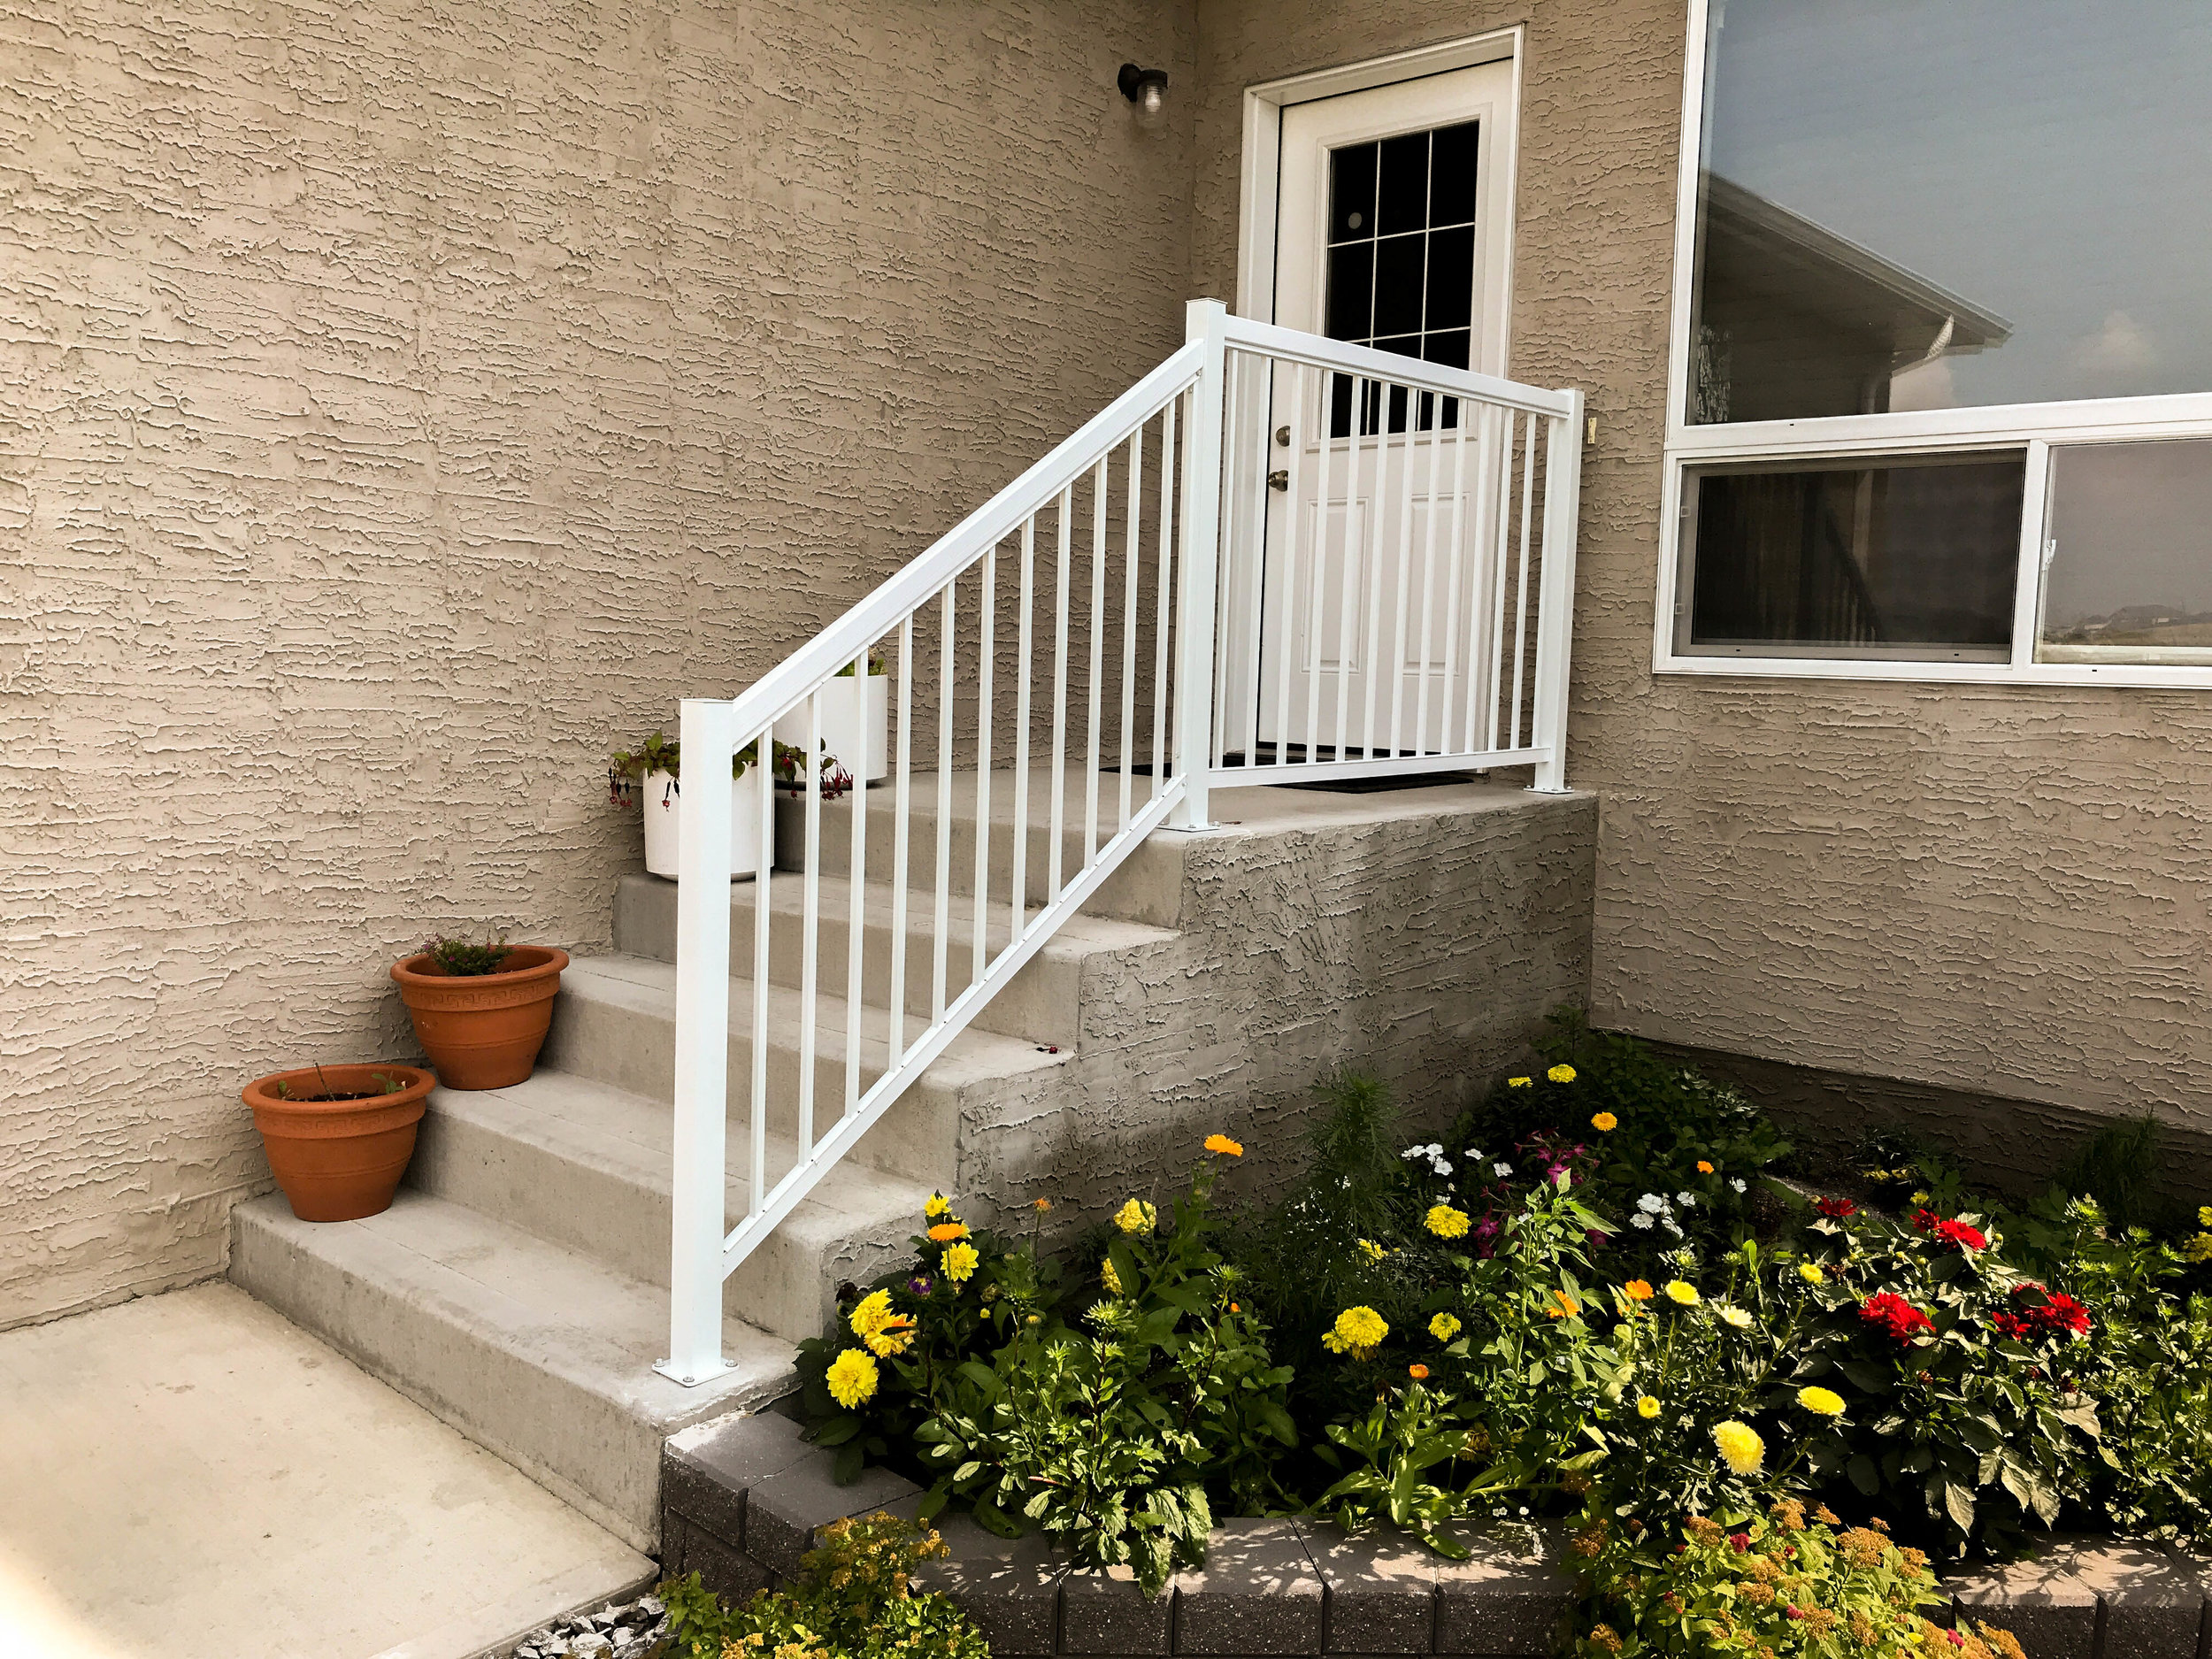 Stair Railing - Most people don't think about stair railings until they need them, but if you've ever had a loved one that needs them you know why they are important.